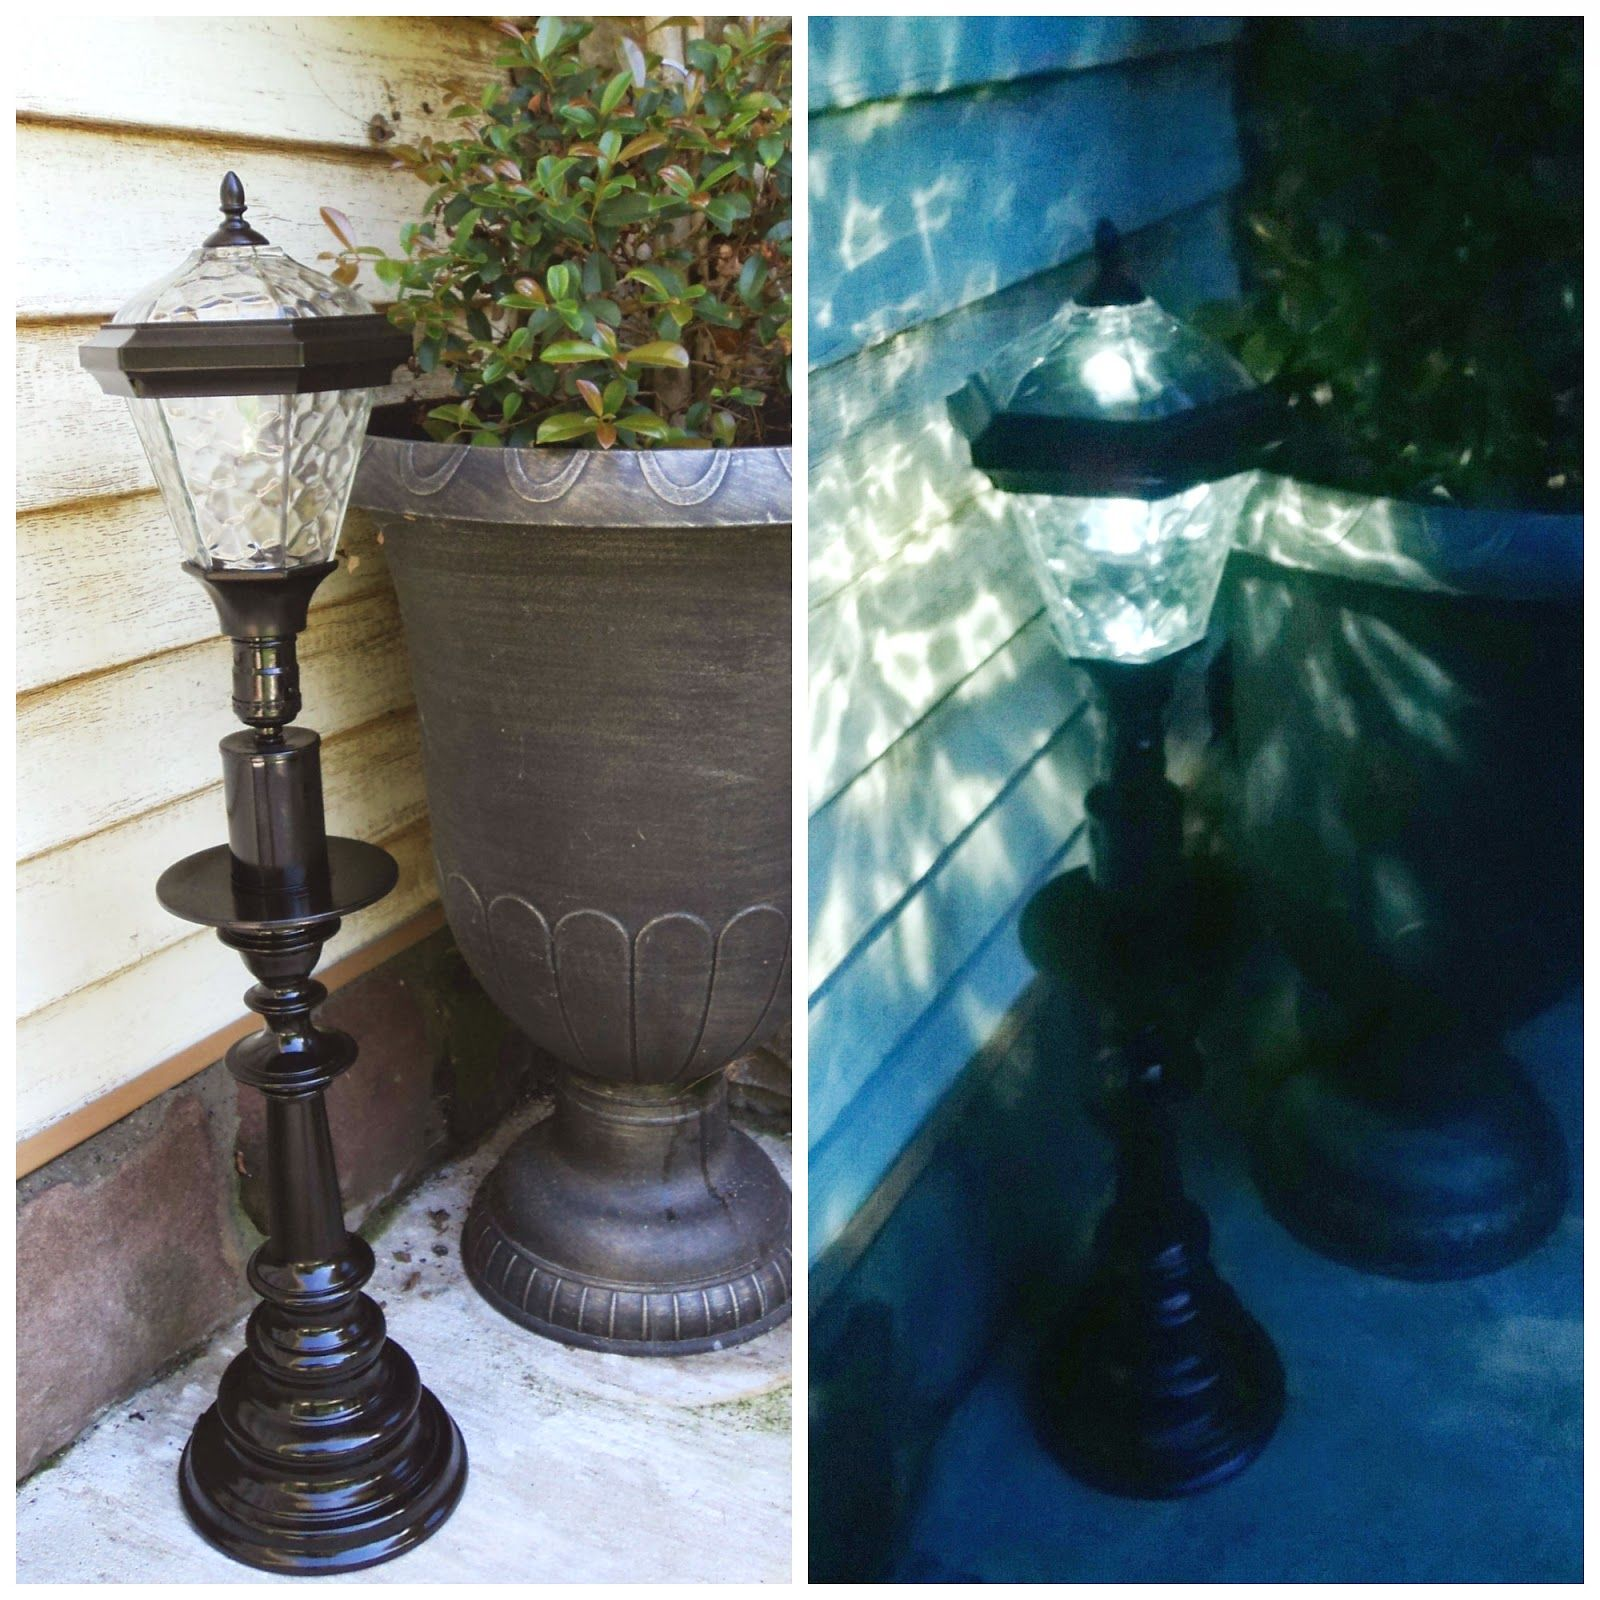 How To Make Solar Lighting From Regular Light Fixtures Several Outdoor Projects Here